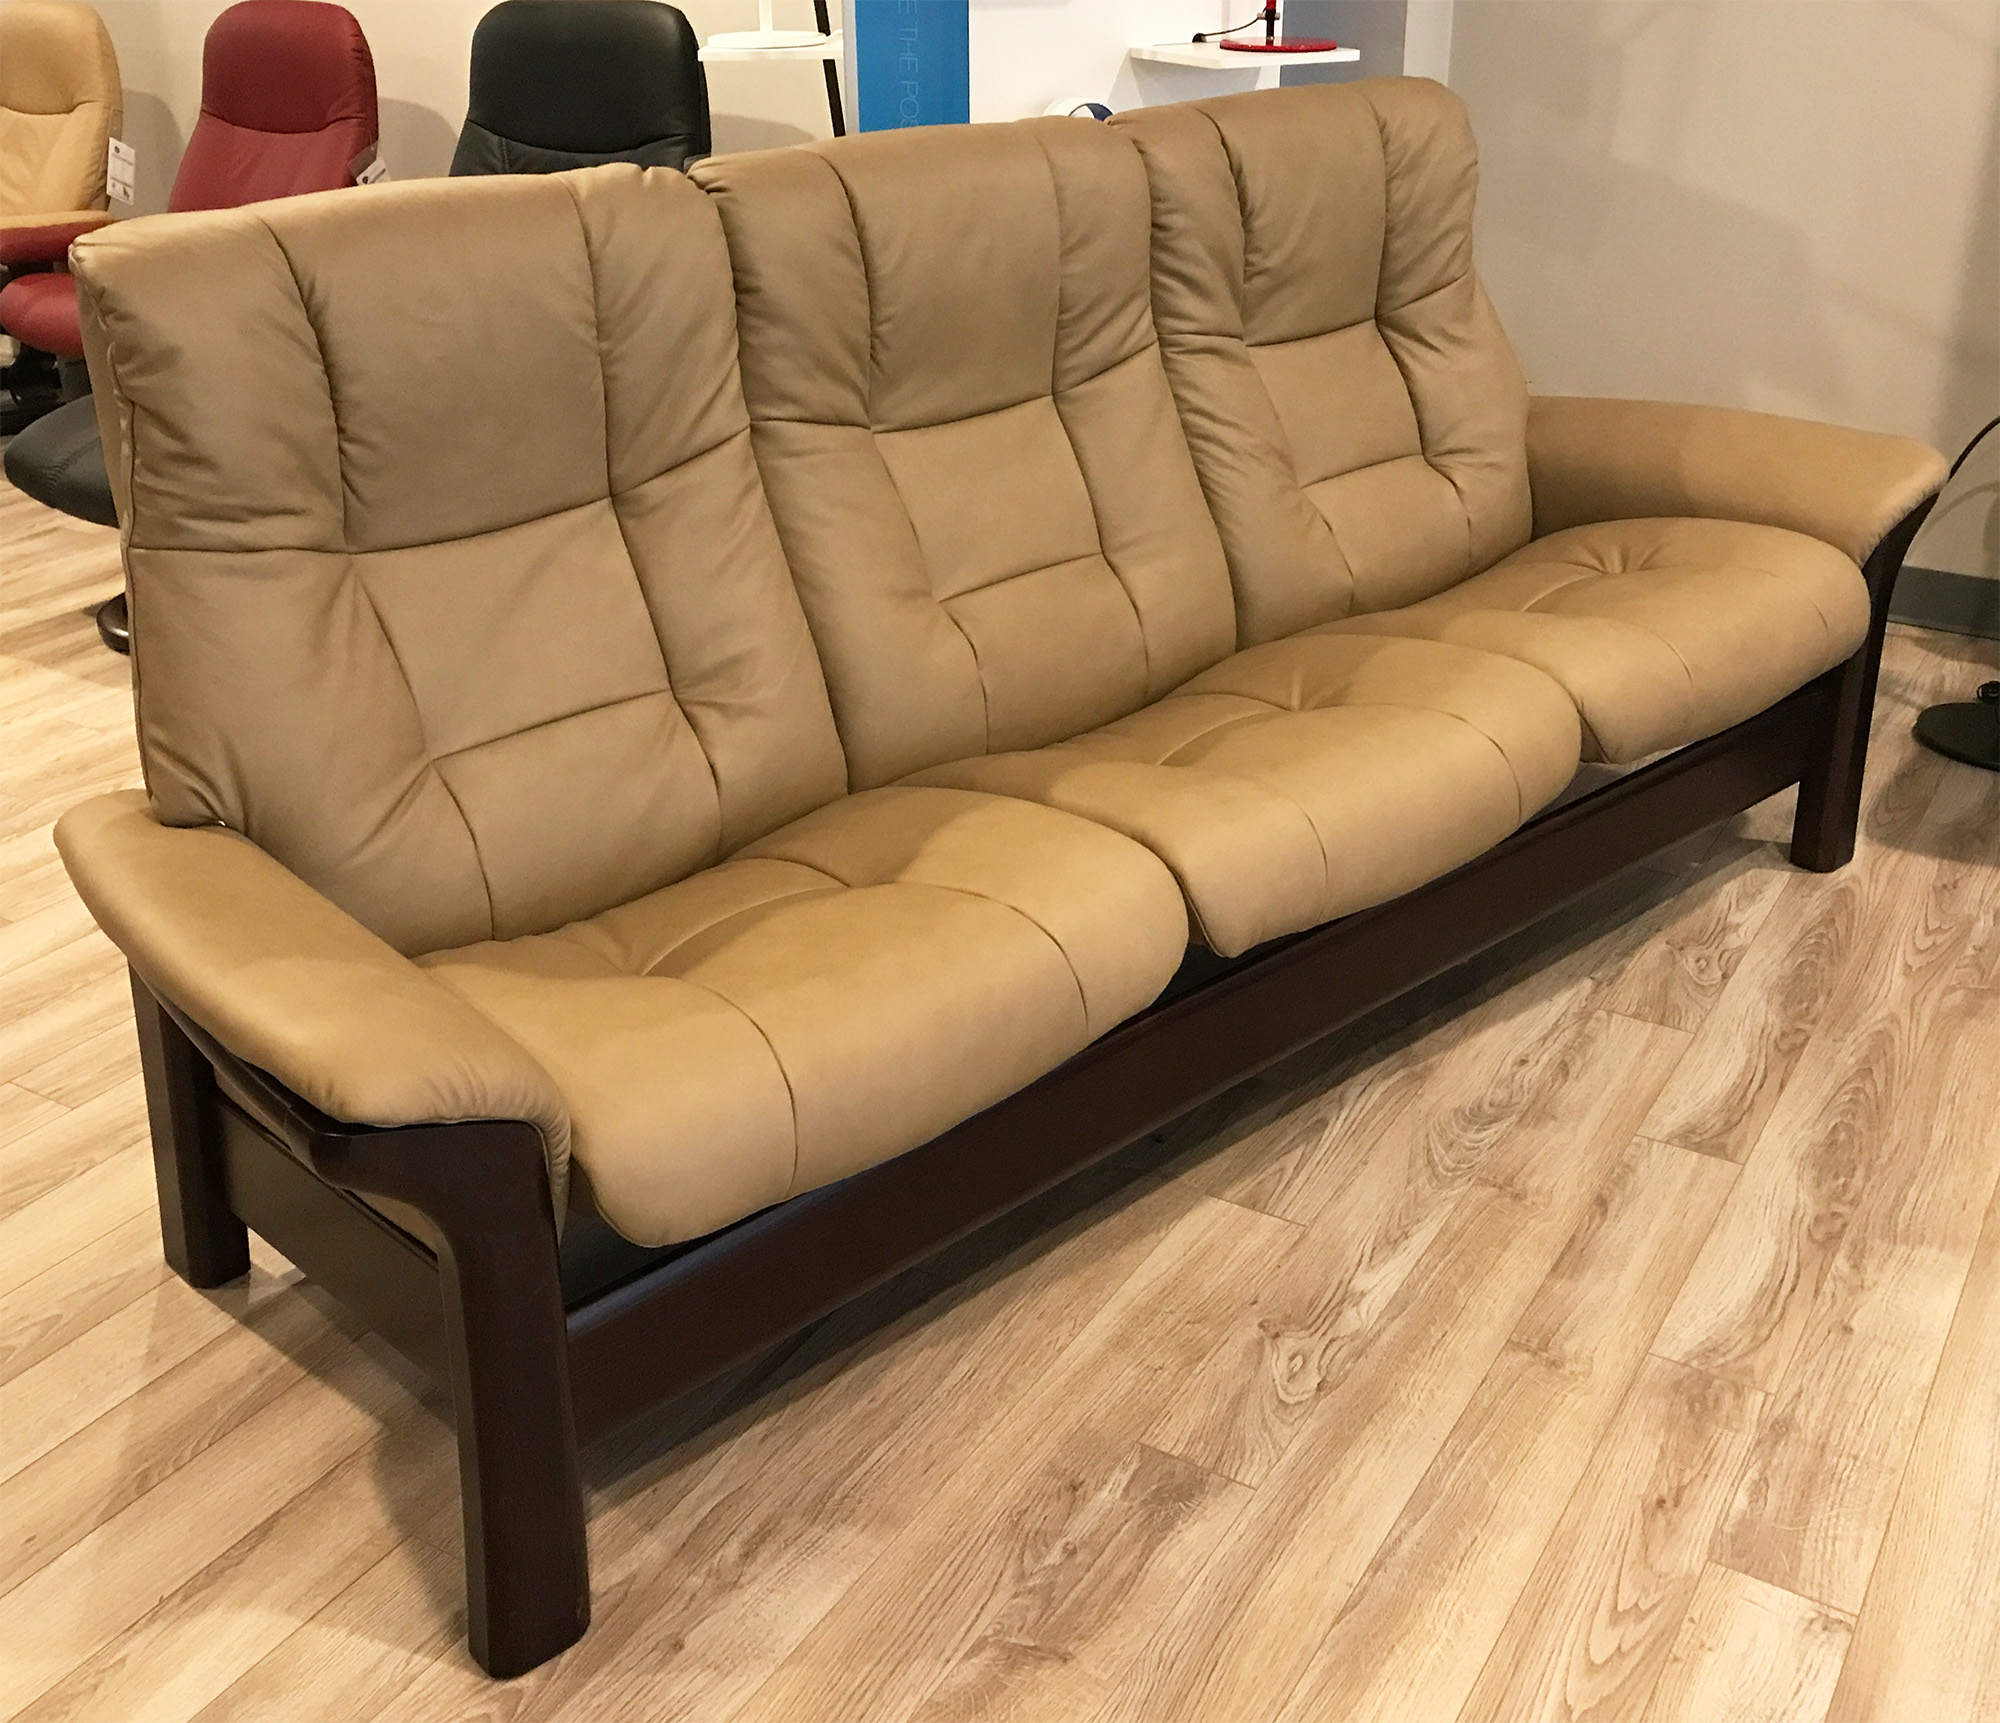 Stressless Buckingham 3 Seat High Back Sofa Paloma Stone